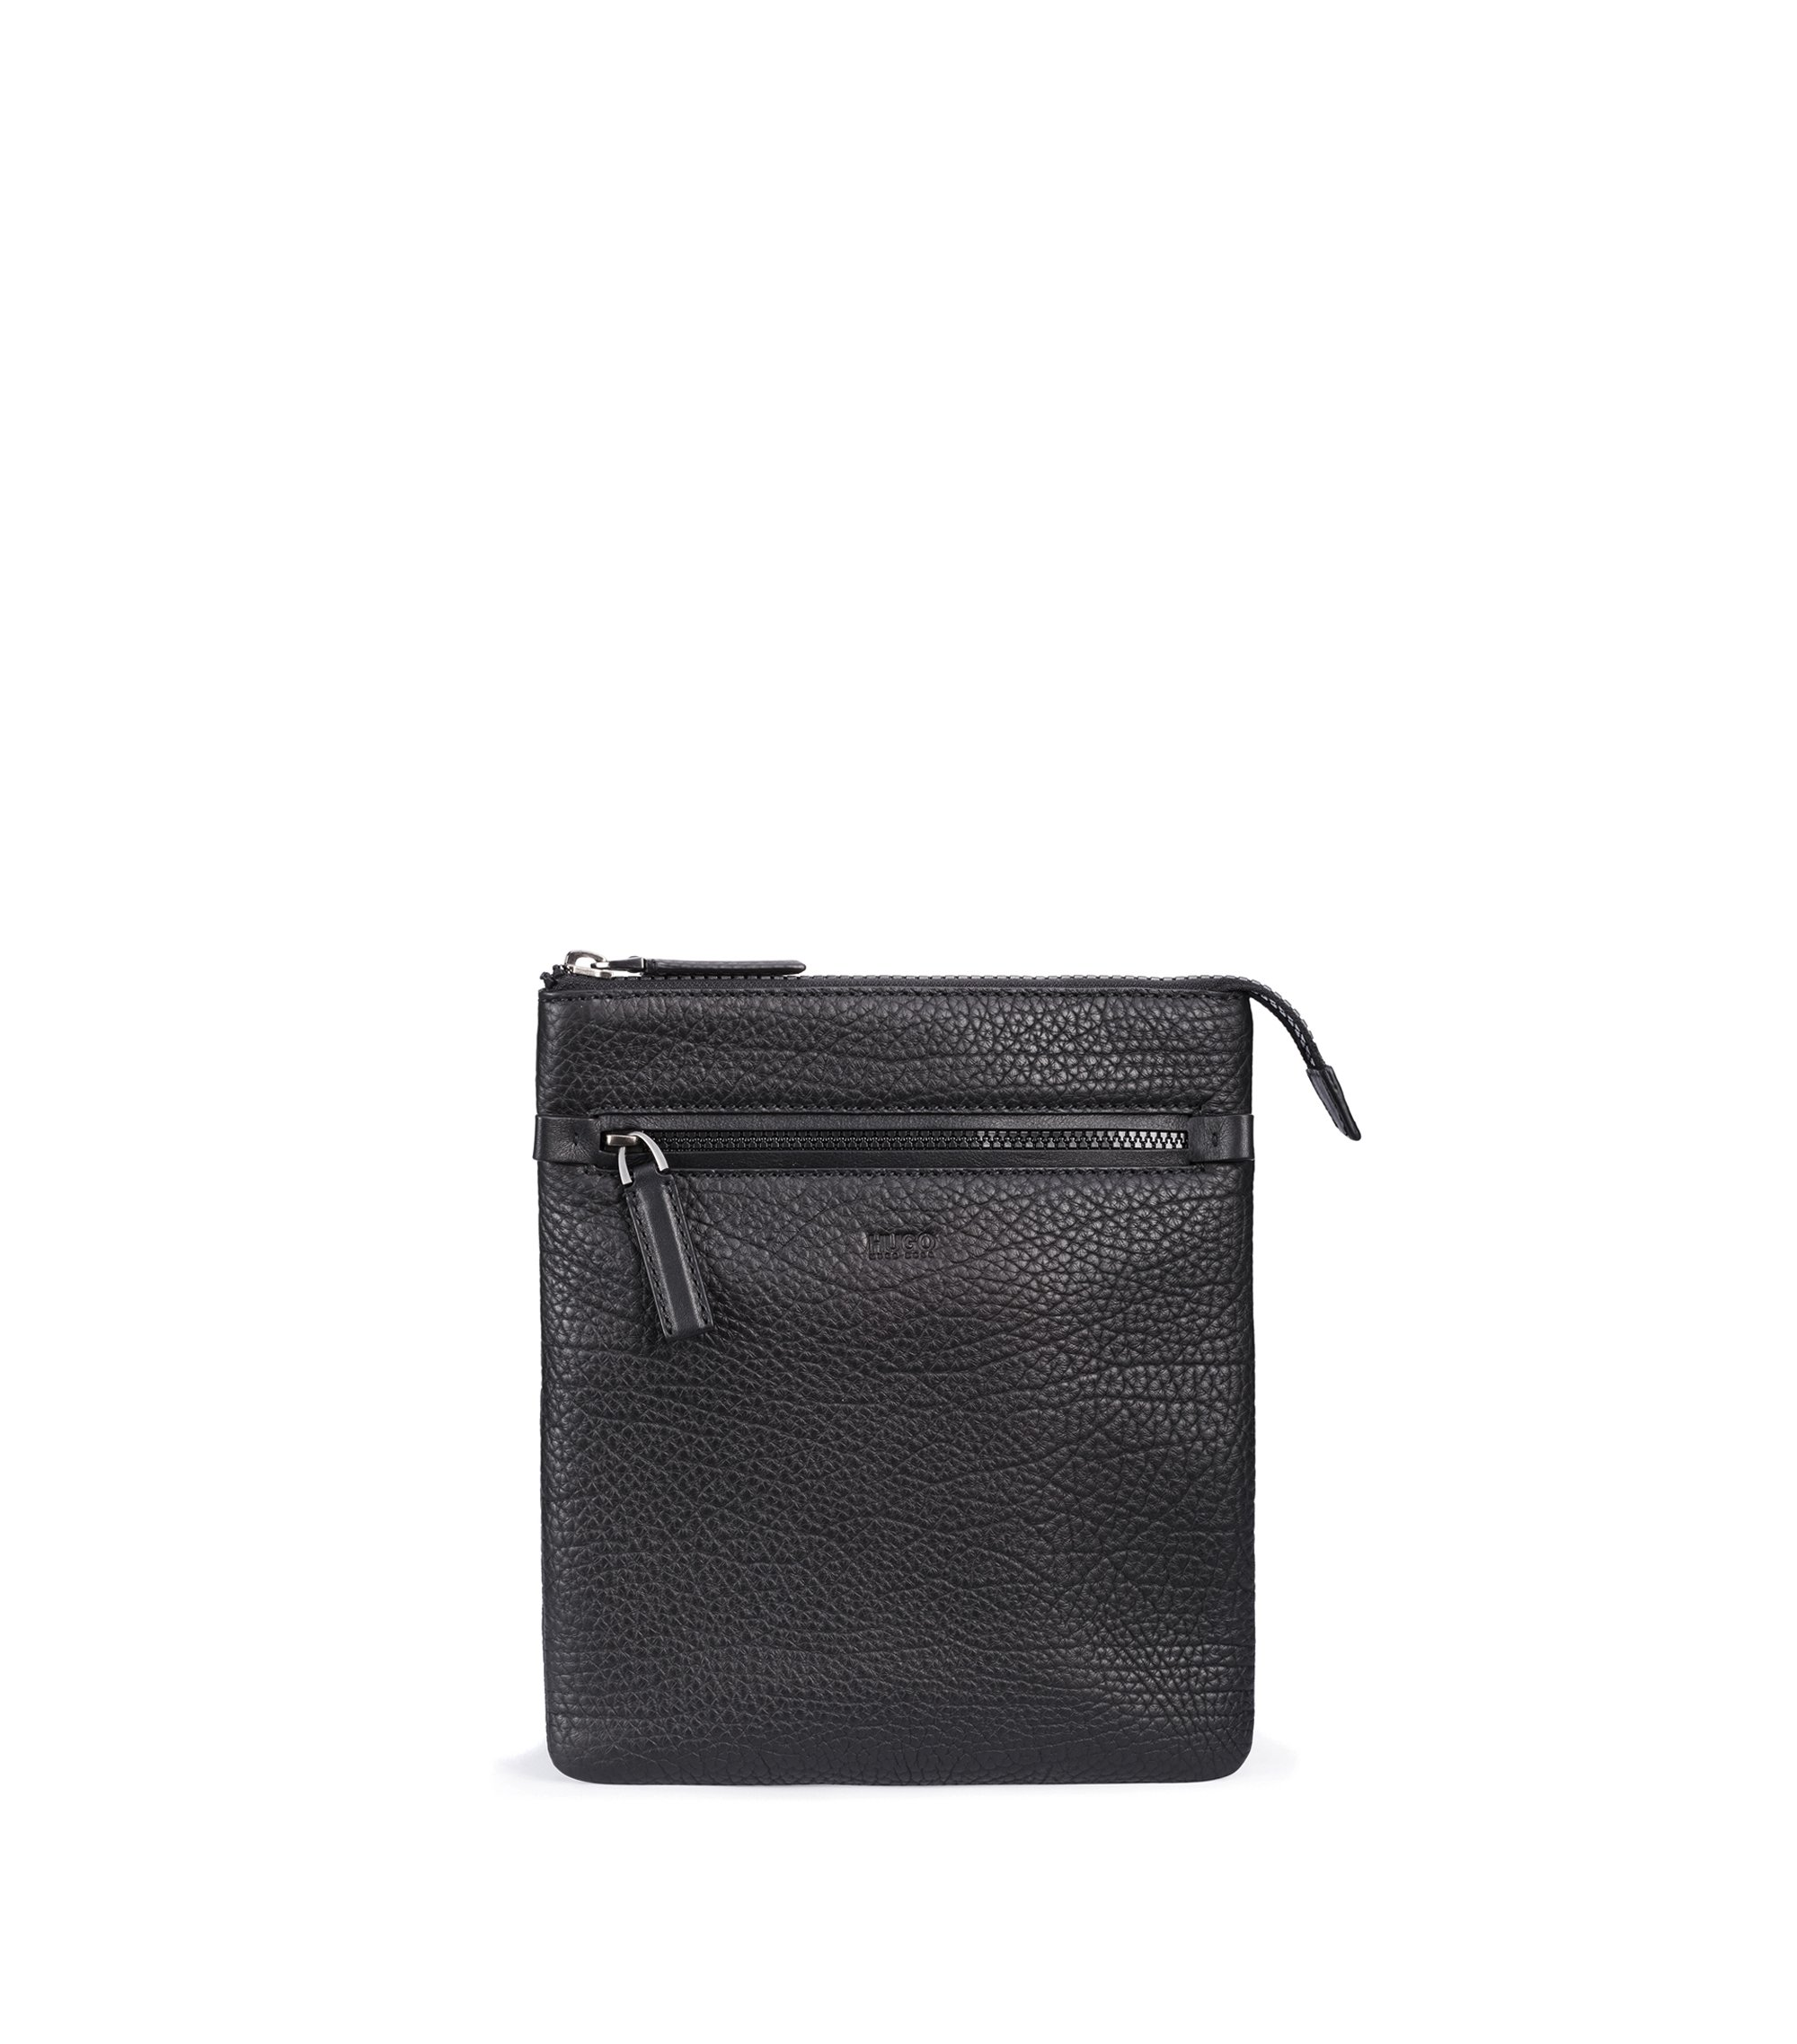 Leather Crossbody Bag | Victorian S Zip Env, Black